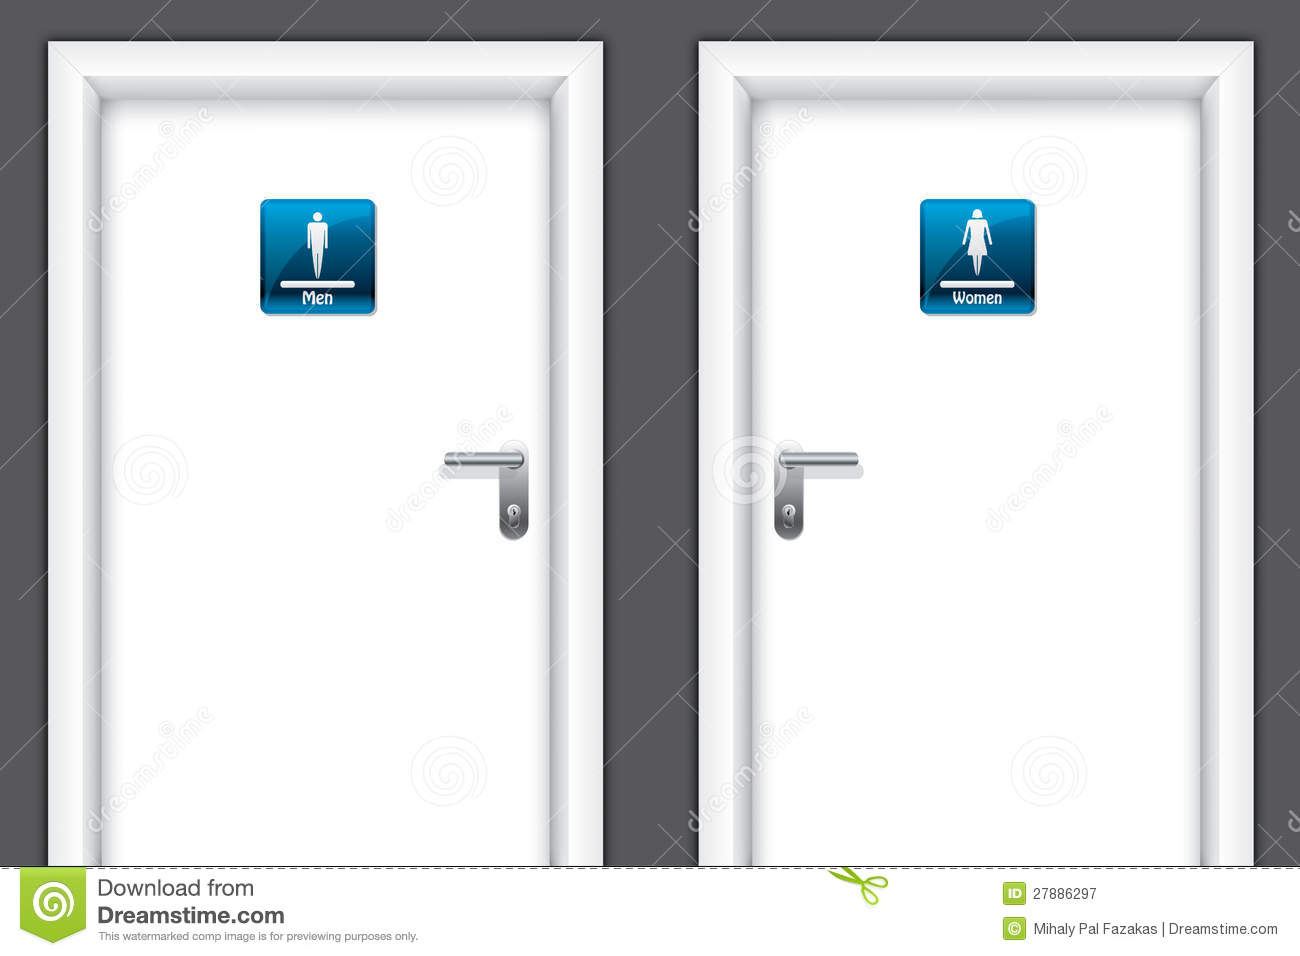 Doors With Restroom Symbols Royalty Free Stock Photography - Image ...